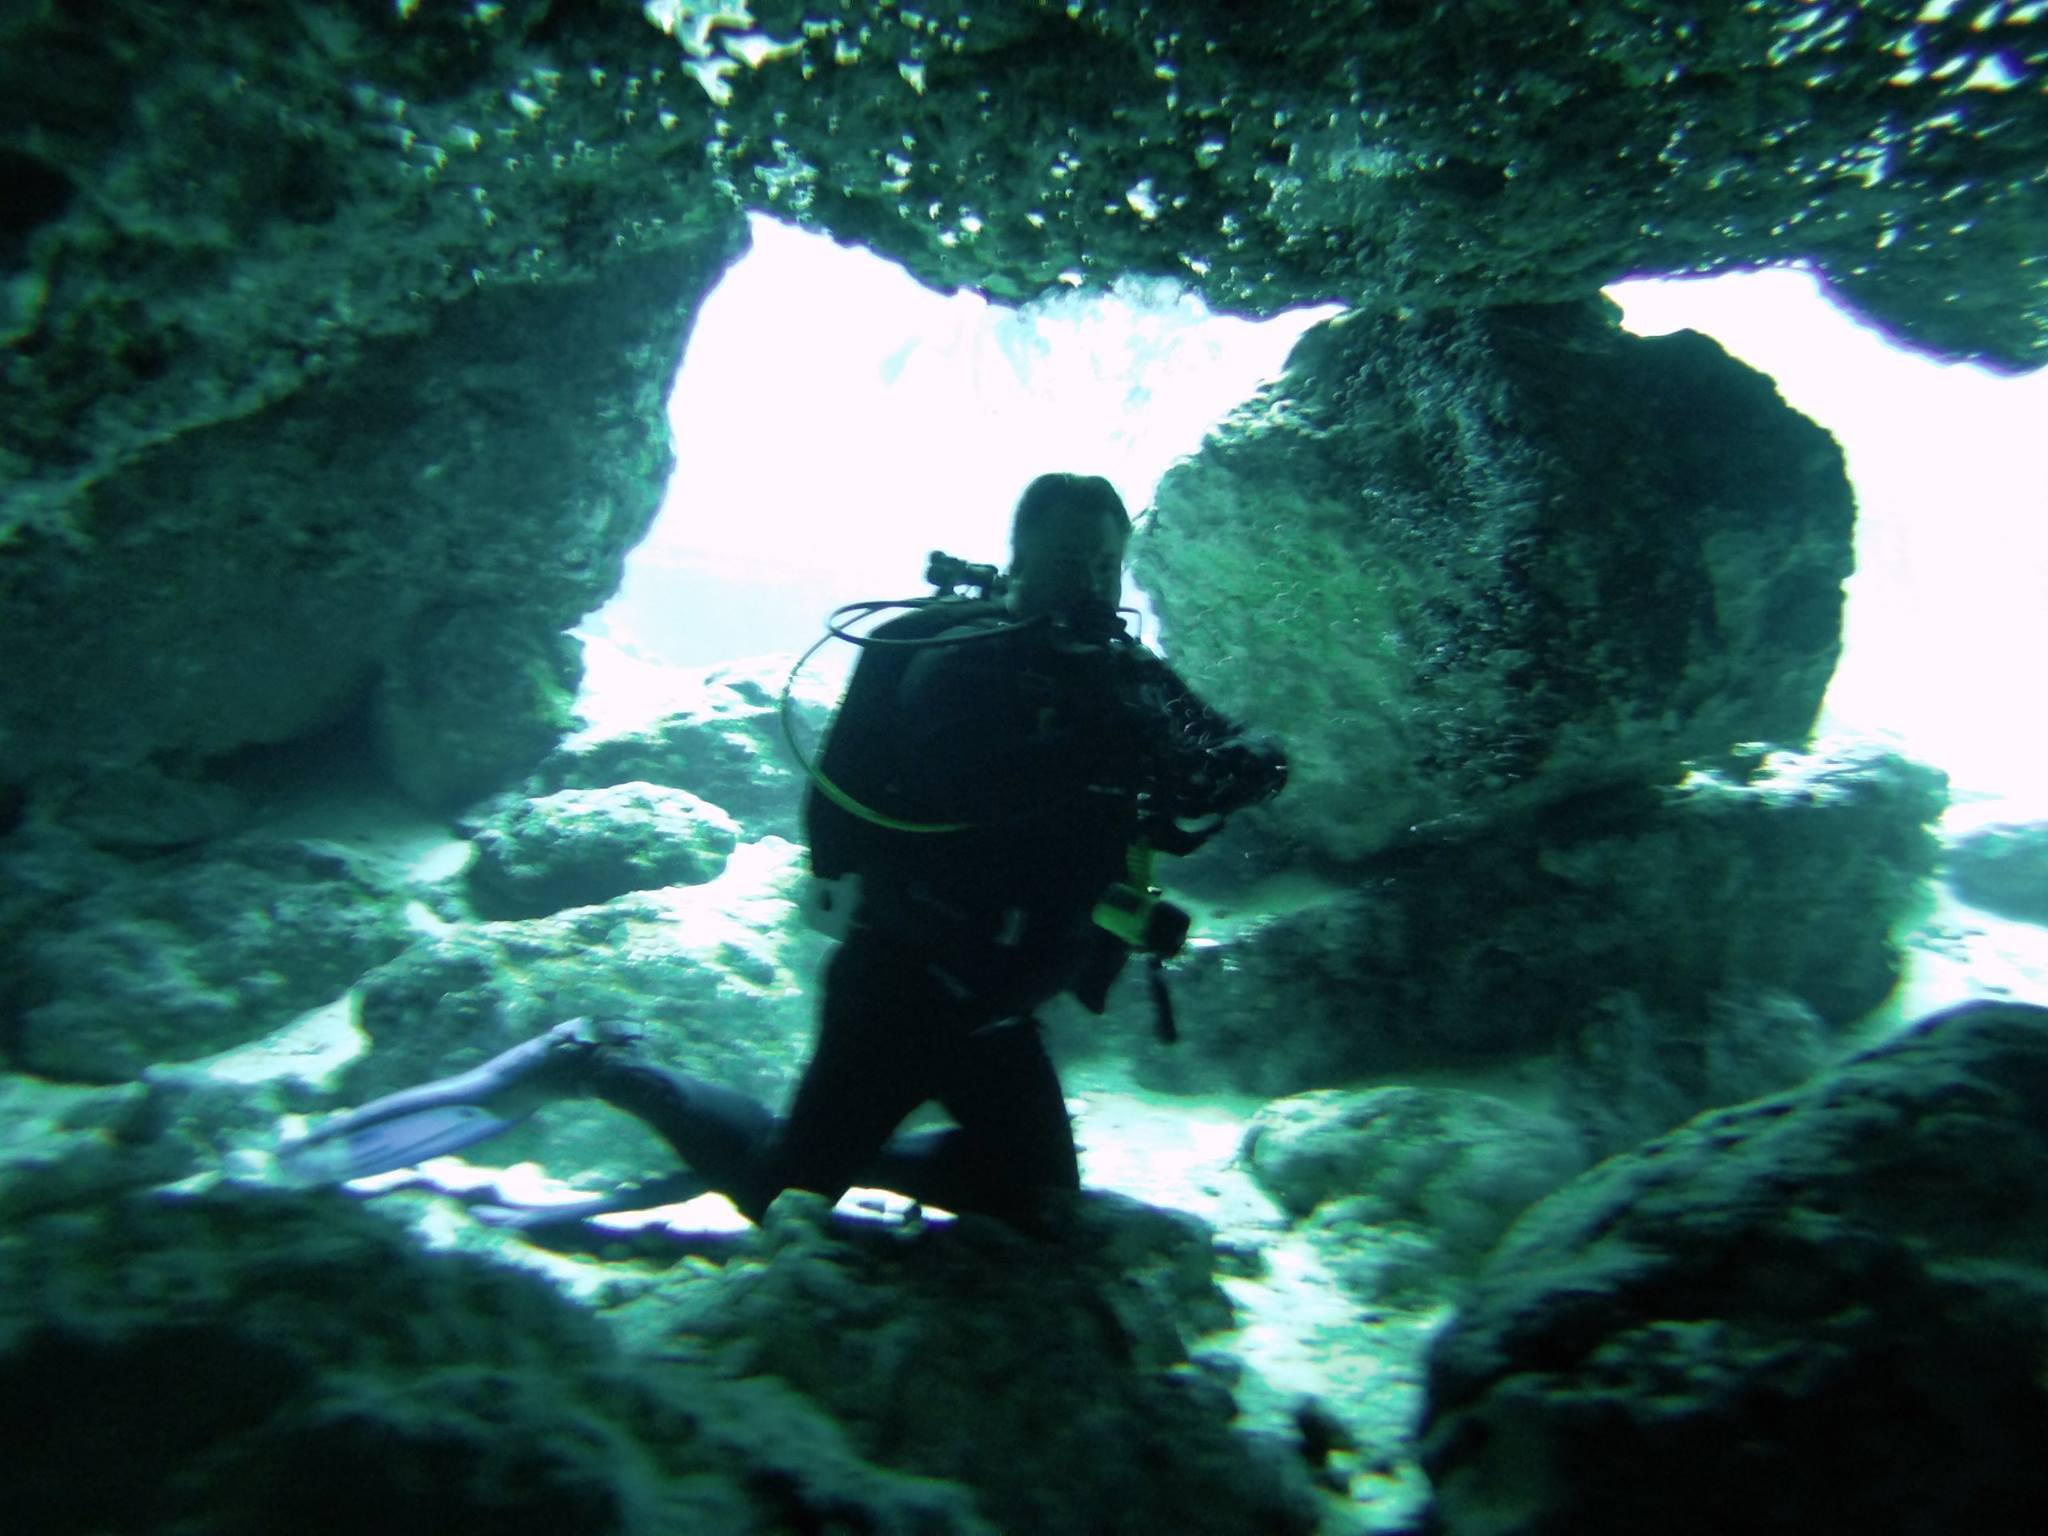 BJ Knapp author of Beside the Music scuba diving in Ginnie Spring in FL